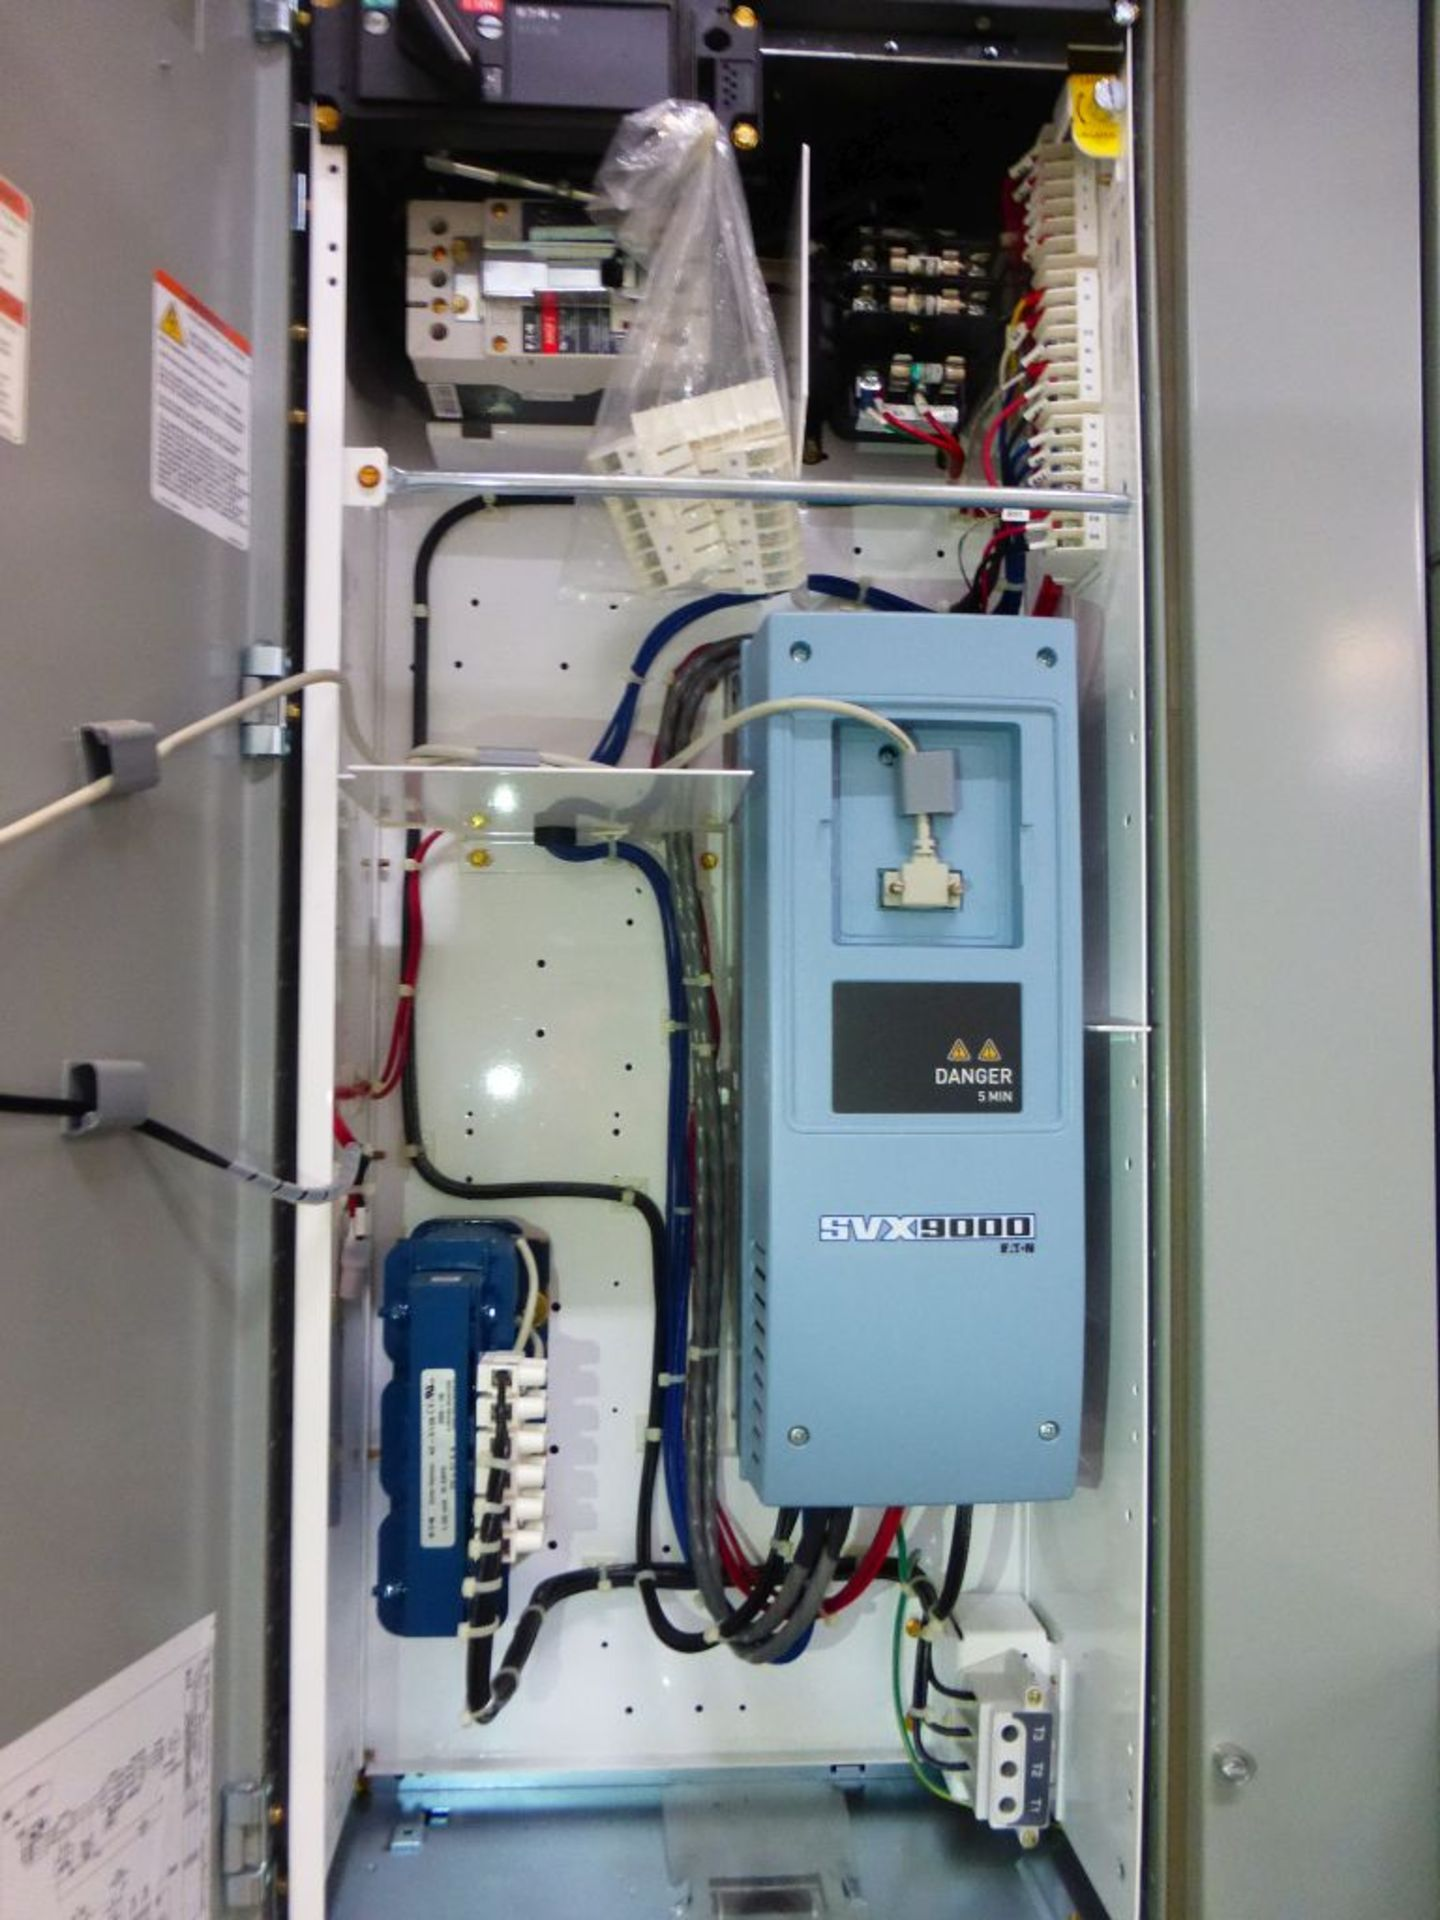 Eaton Freedom 2100 Series Motor Control Center   (4) SVX900-30A, with Eaton AF Drives, SVX9000, - Image 57 of 60